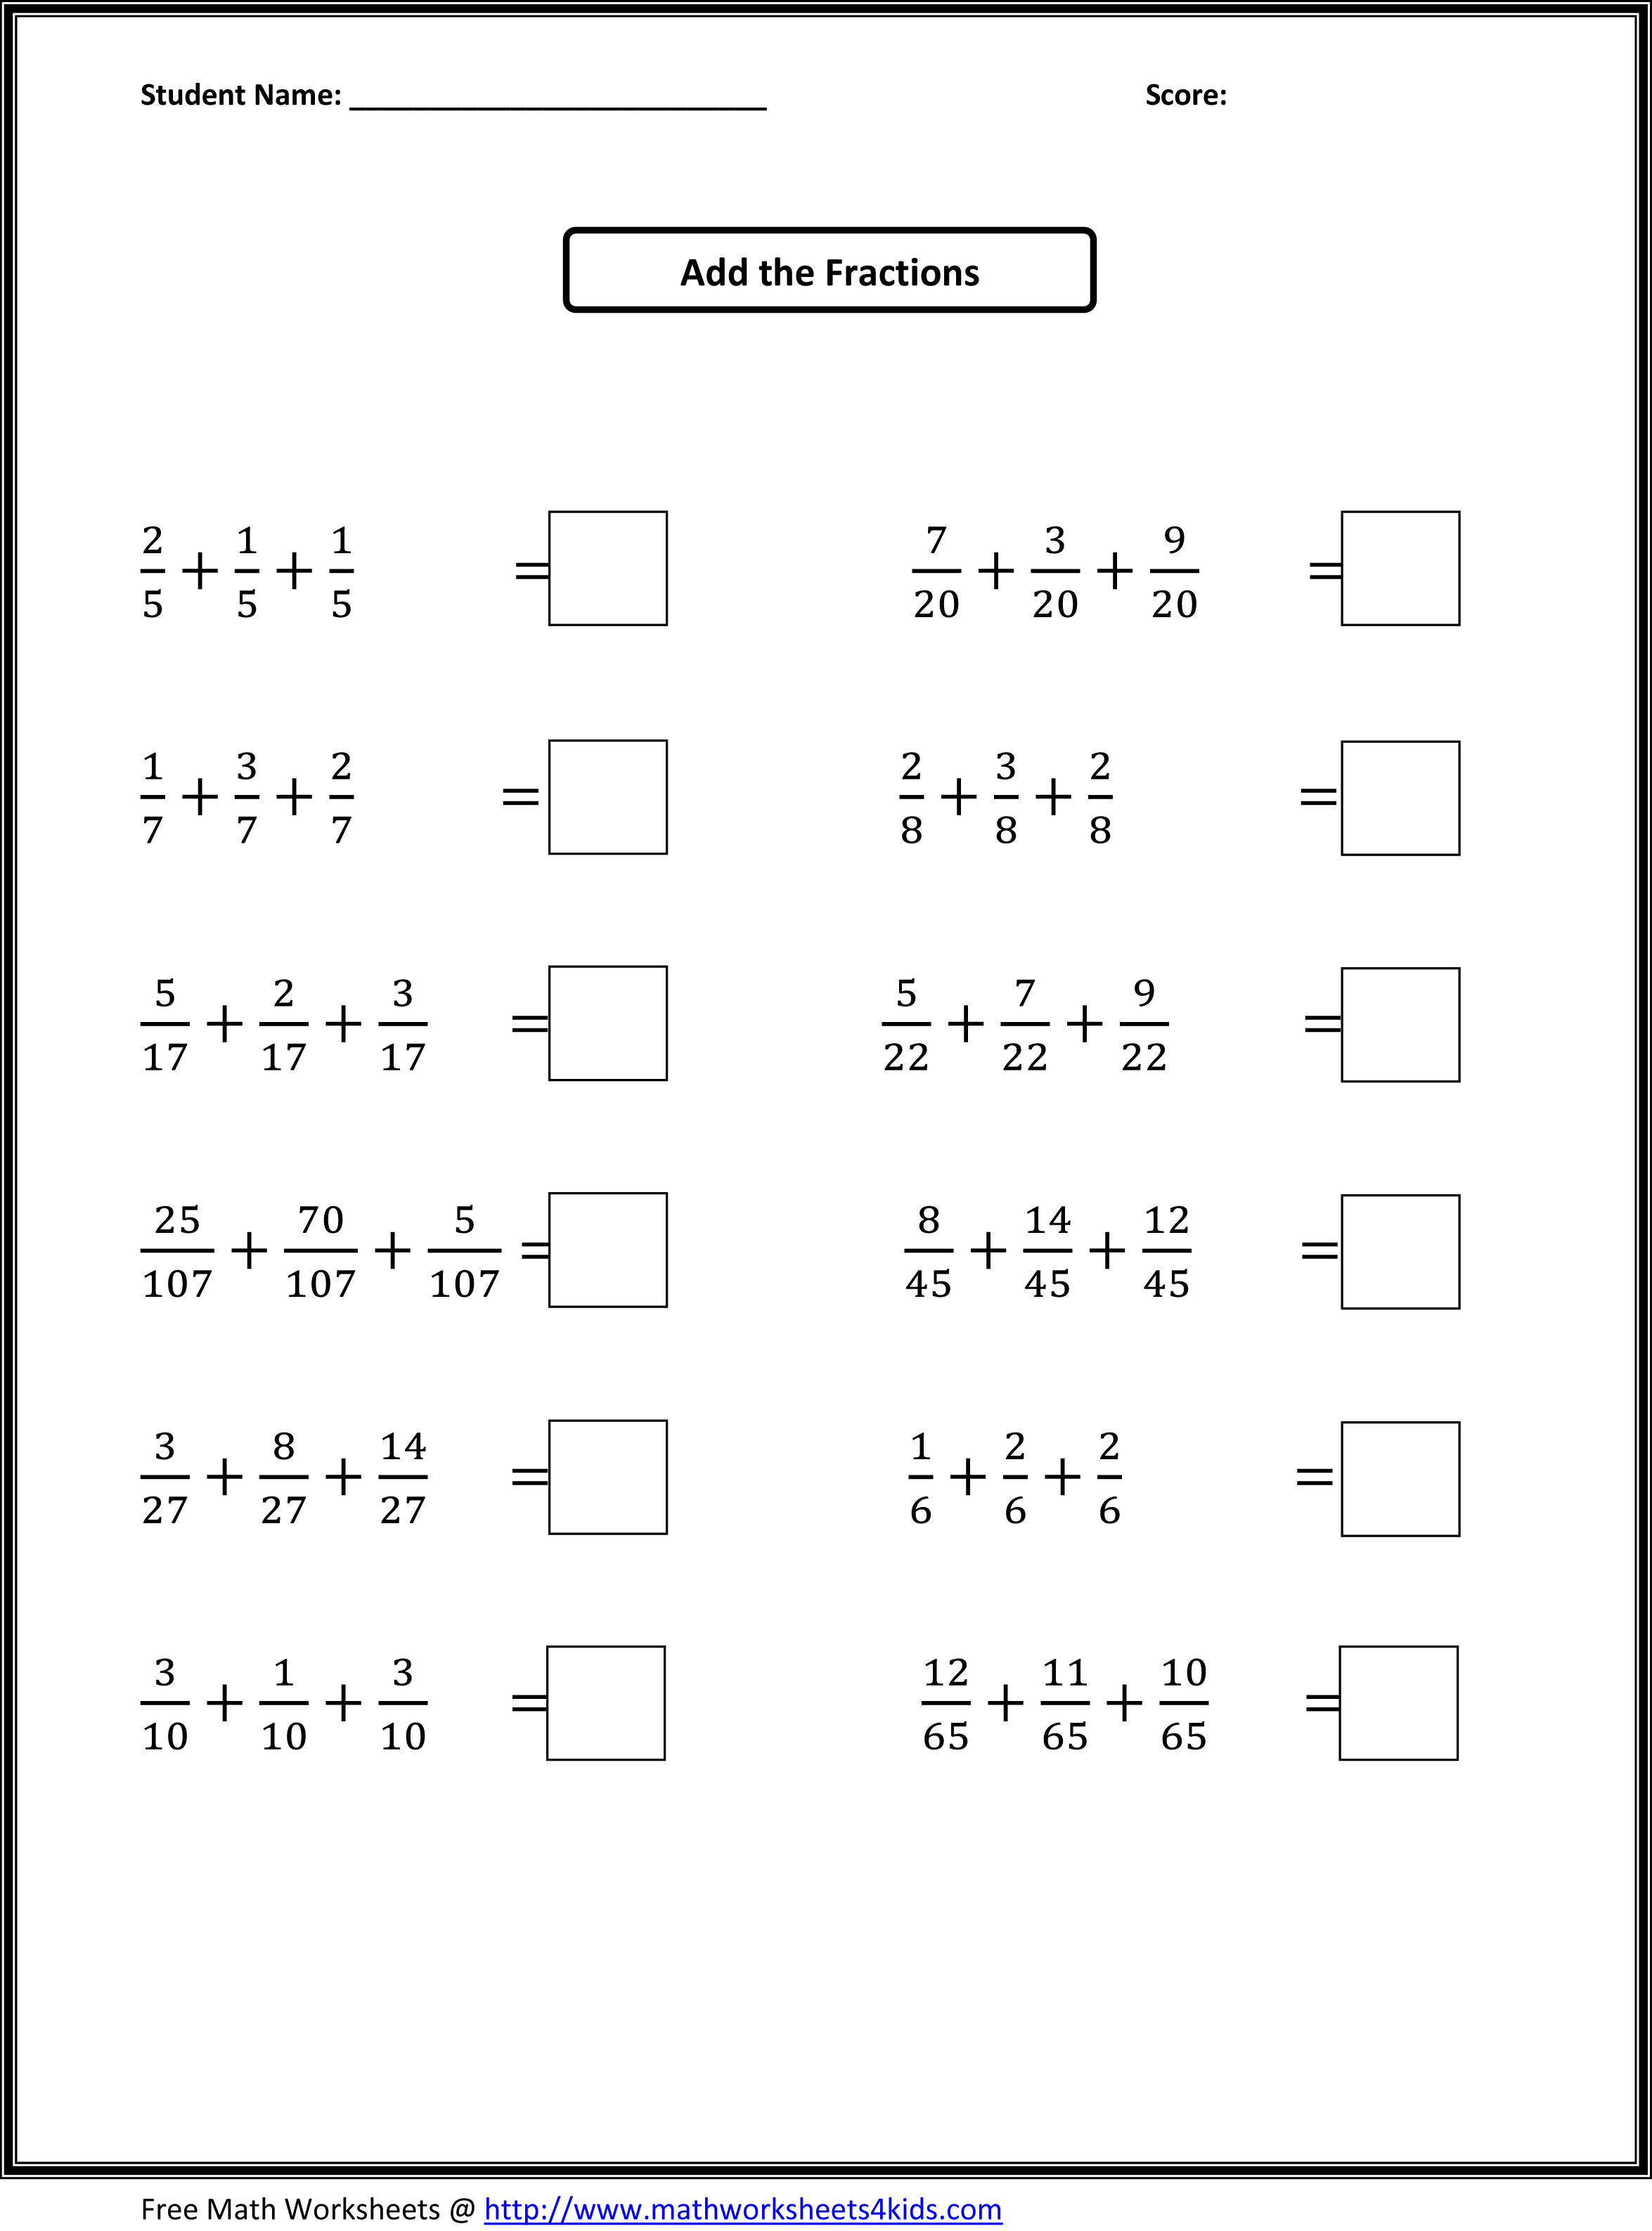 Worksheet Subtracting Fraction Problems adding and subtracting fractions word problems worksheet prentice hall also descriptive writing middle